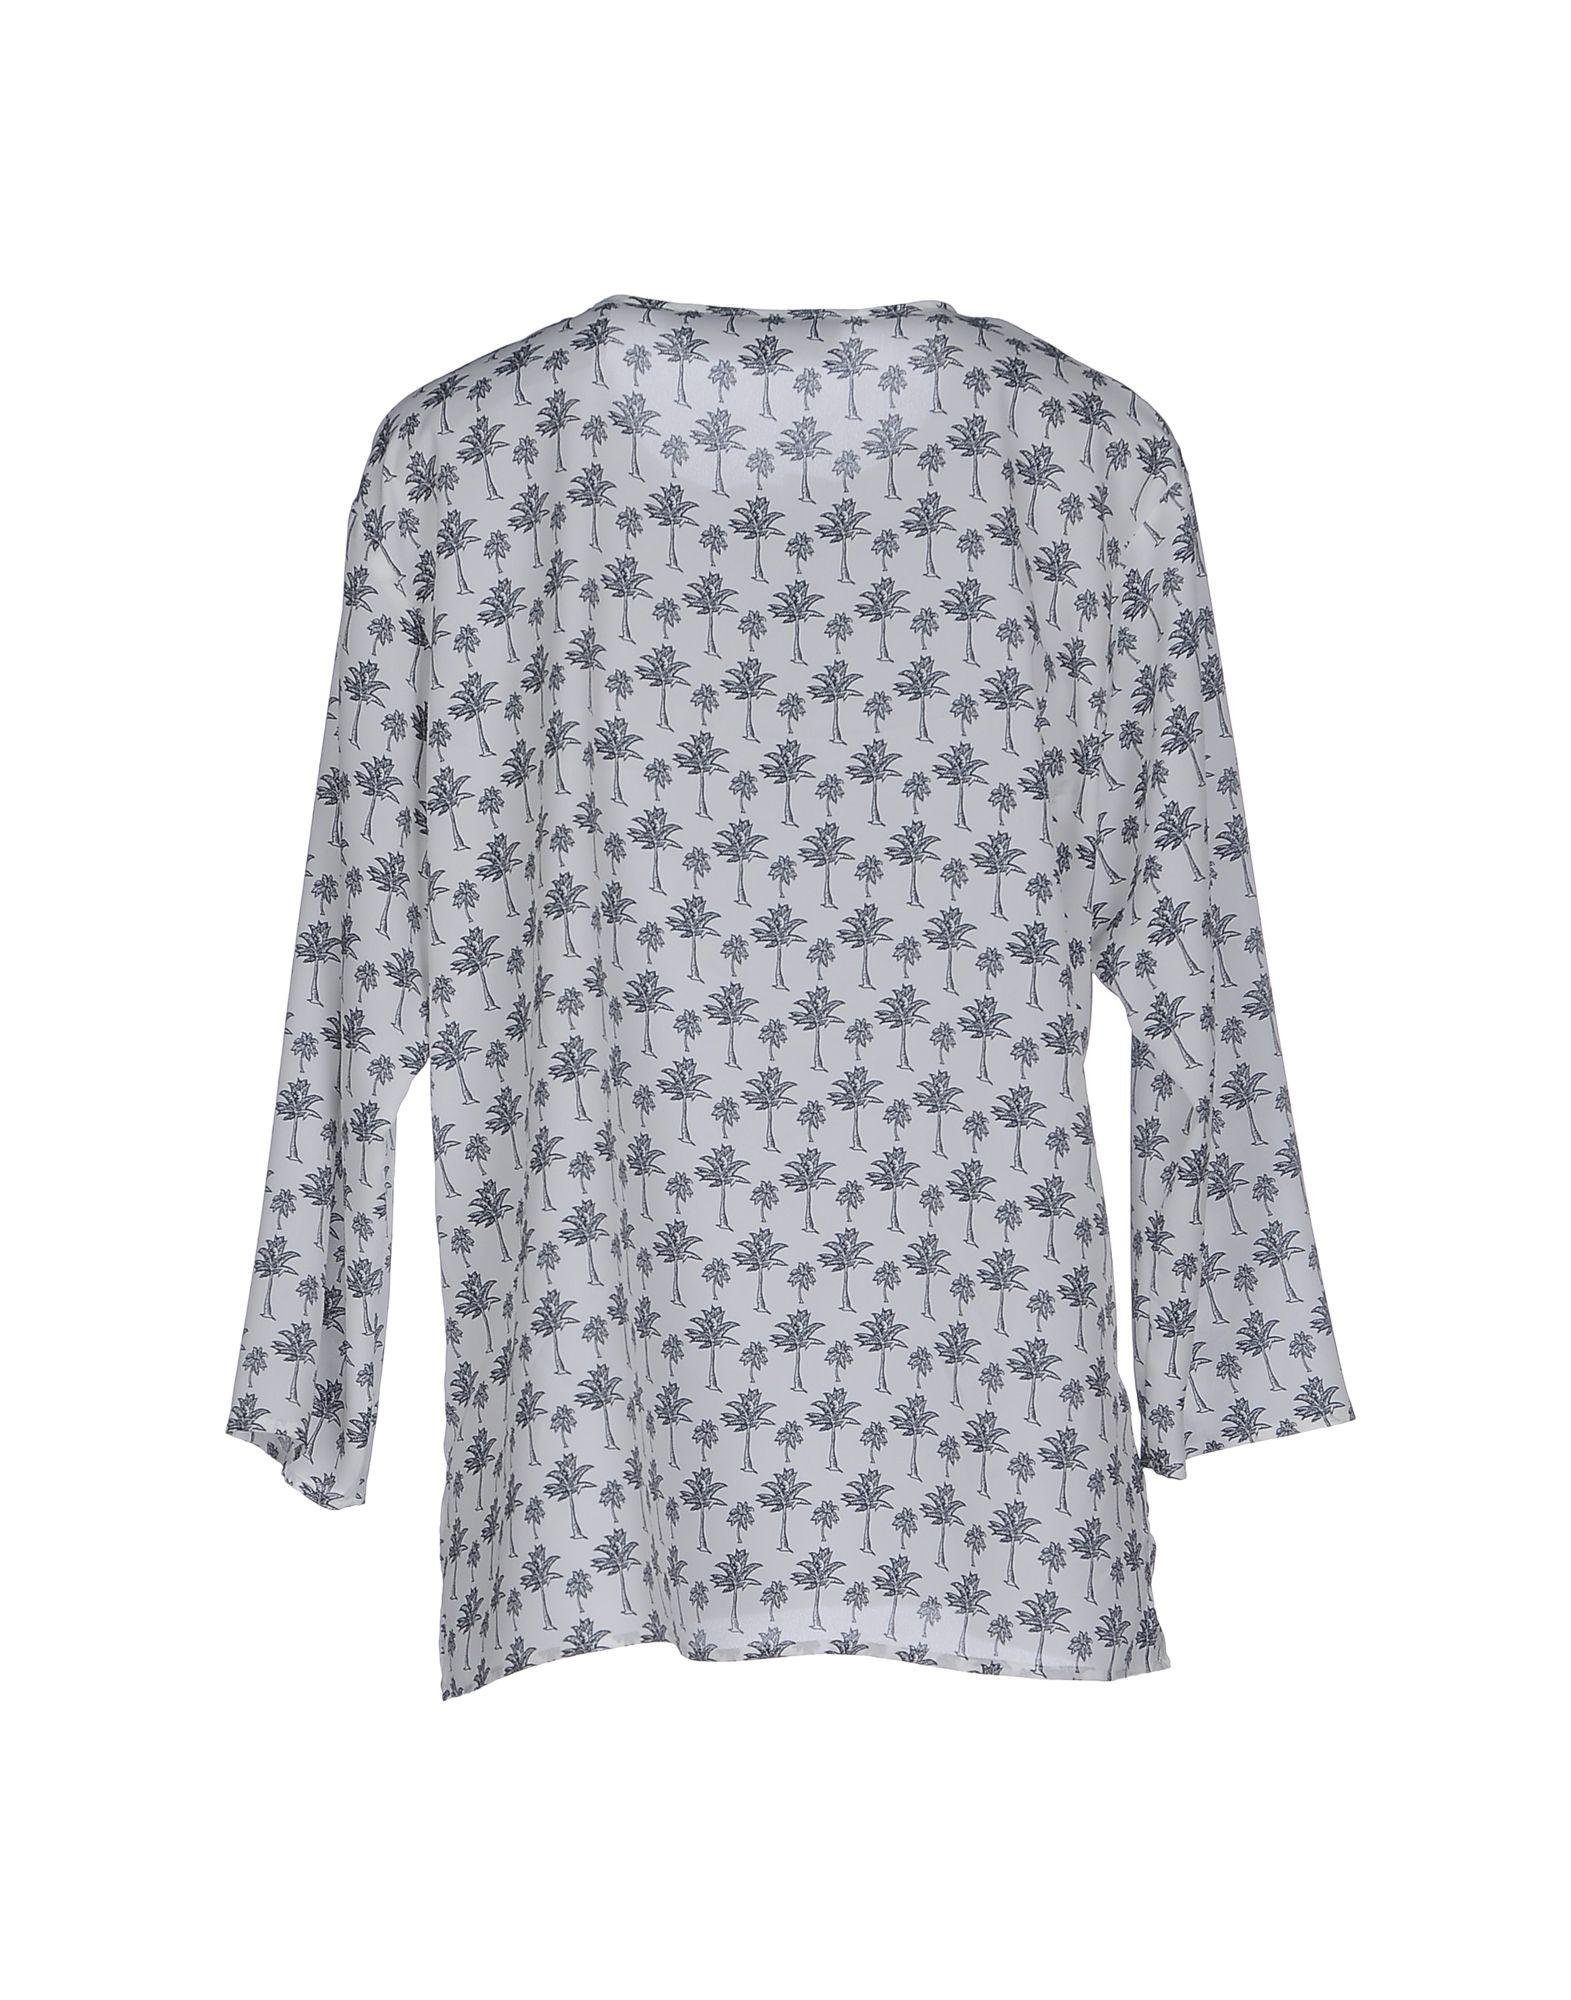 Cheap Sale Ebay SHIRTS - Blouses Gallo Collections Cheap Online Discount Low Shipping Outlet Discount HbLWDb